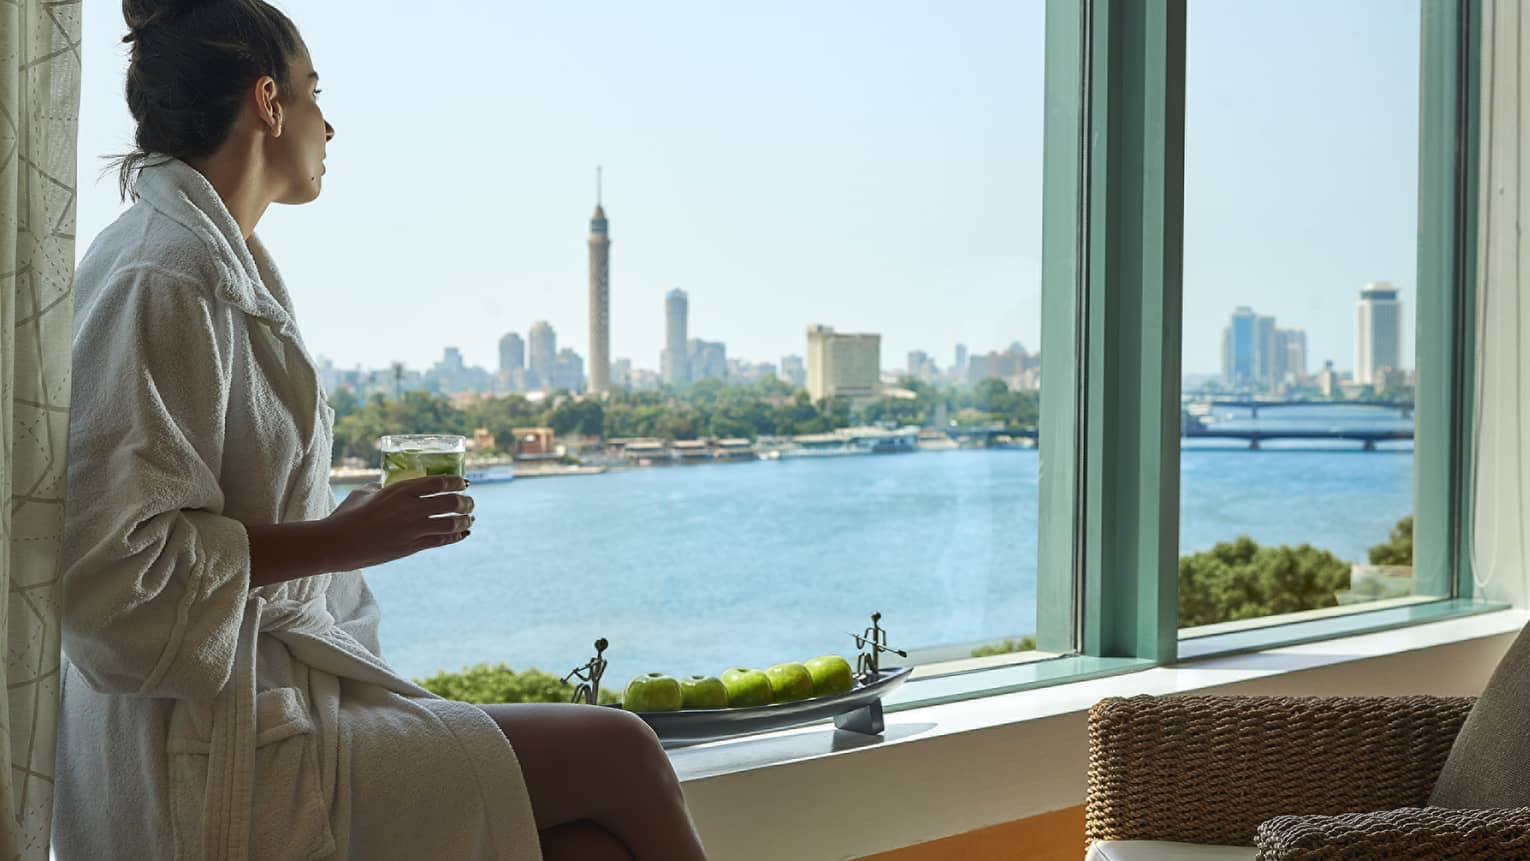 Woman wearing white robe sits on window ledge overlooking Nile River